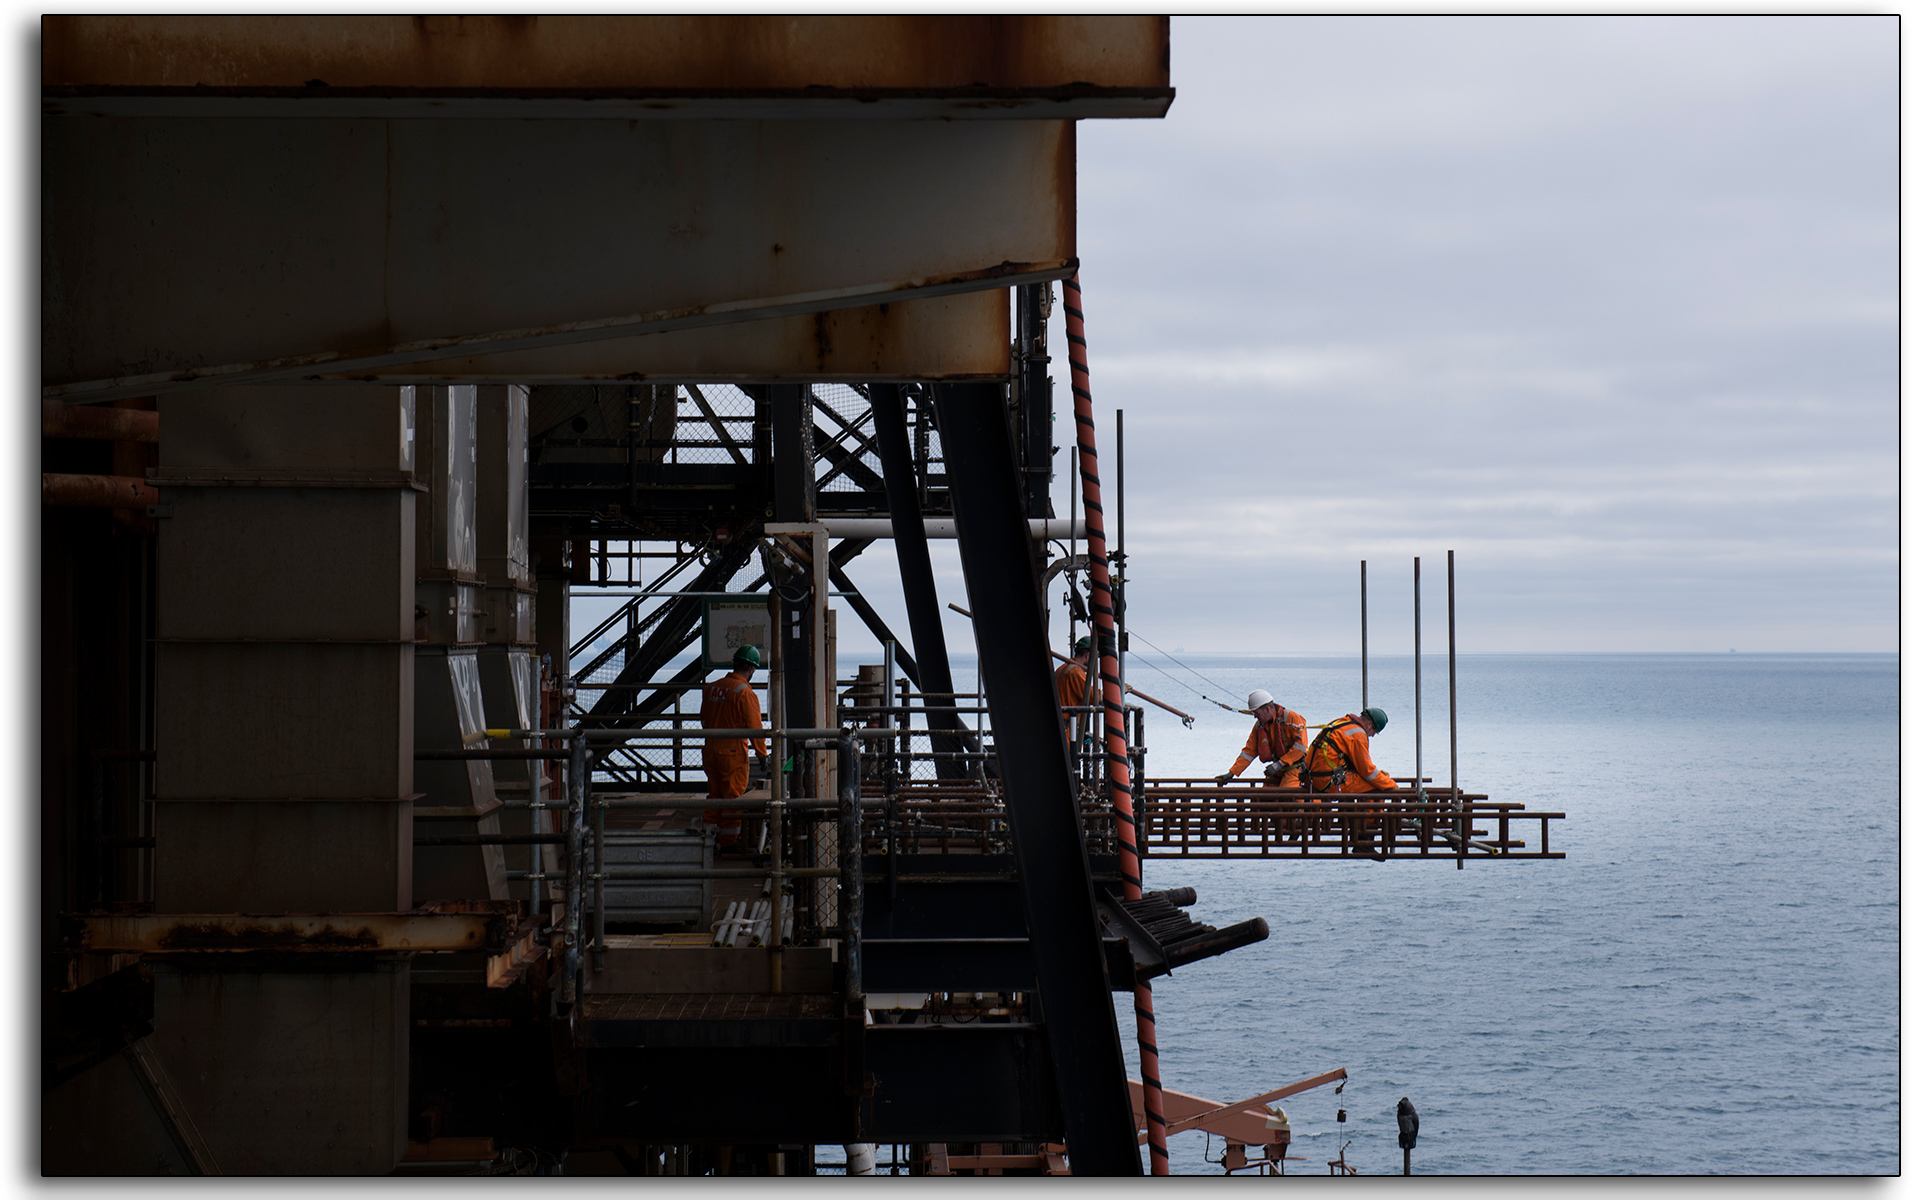 Scaffolders, working at height, contruction, decommissioning, outbaord, scaffolding, BP Miller, north sea, offshore, oil and gas industry, Lee Ramsden..jpg